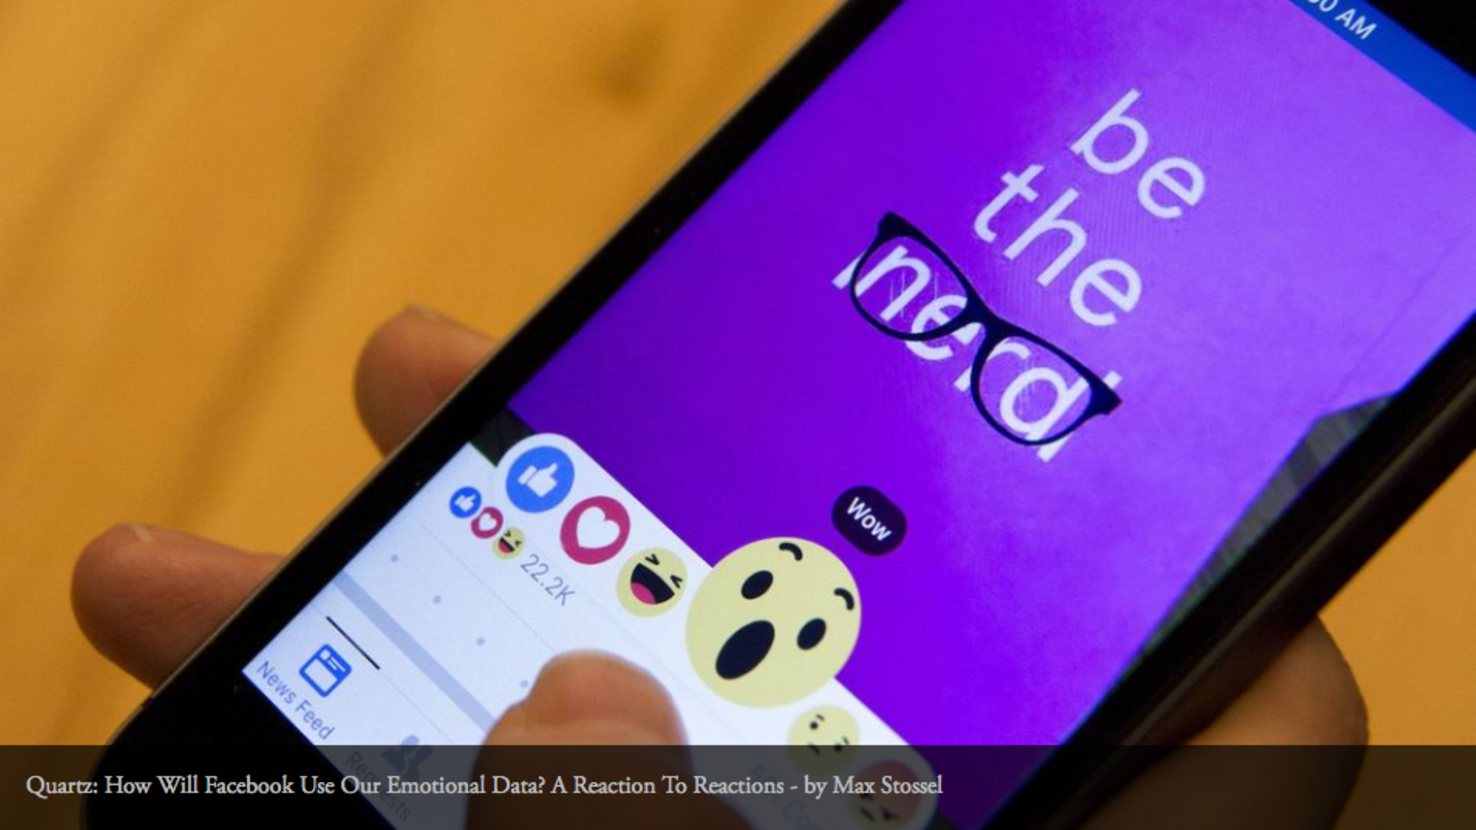 """QUARTZ: How Will Facebook Use Our Emotional Data? - A Reaction to Reactions   When Facebook swapped out the """"Like"""" for a slew of other emotional options, Quartz reached out to Max for his take on how that shift would impact society."""